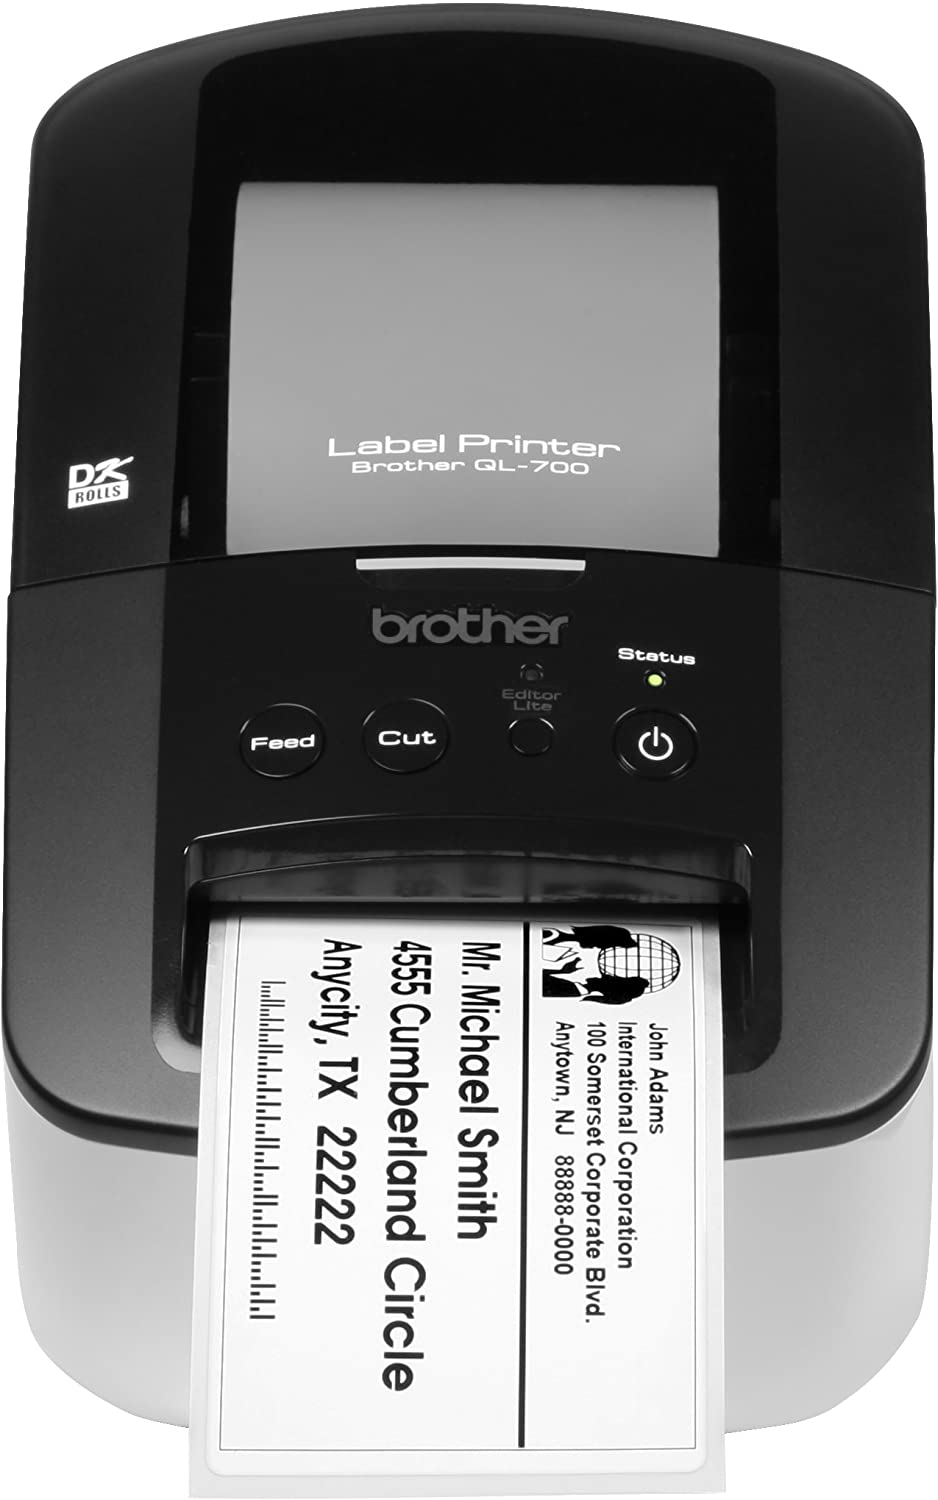 Brother QL-700 High-speed, Professional Label Printer : Label Makers : Home & Kitchen